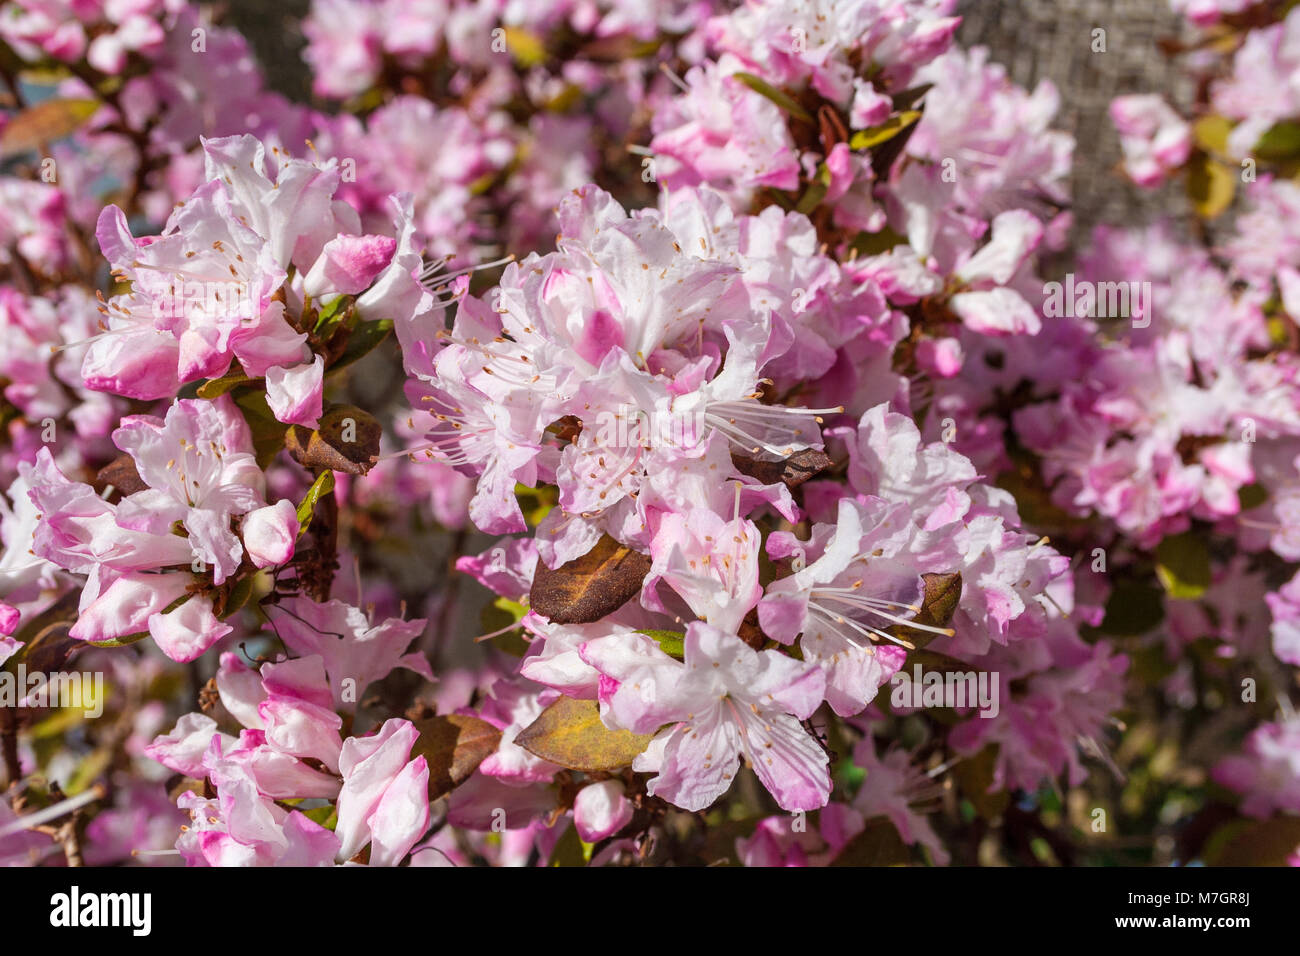 A close-up of the blossoms of a Rhododendron obtusum 'Kermesina Rose'. - Stock Image